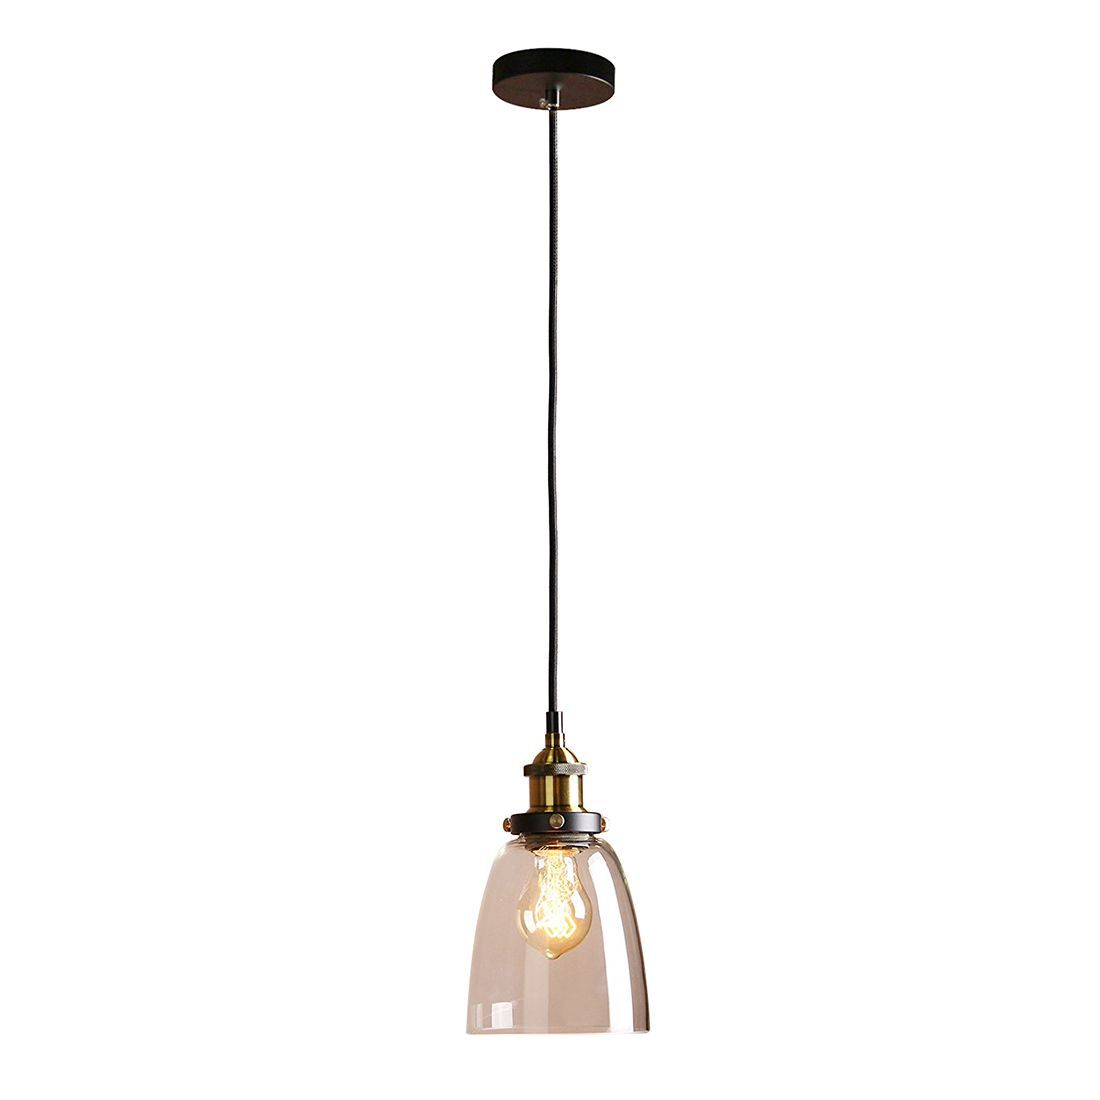 Promo Stylish Different Modern Vintage Industrial Edison